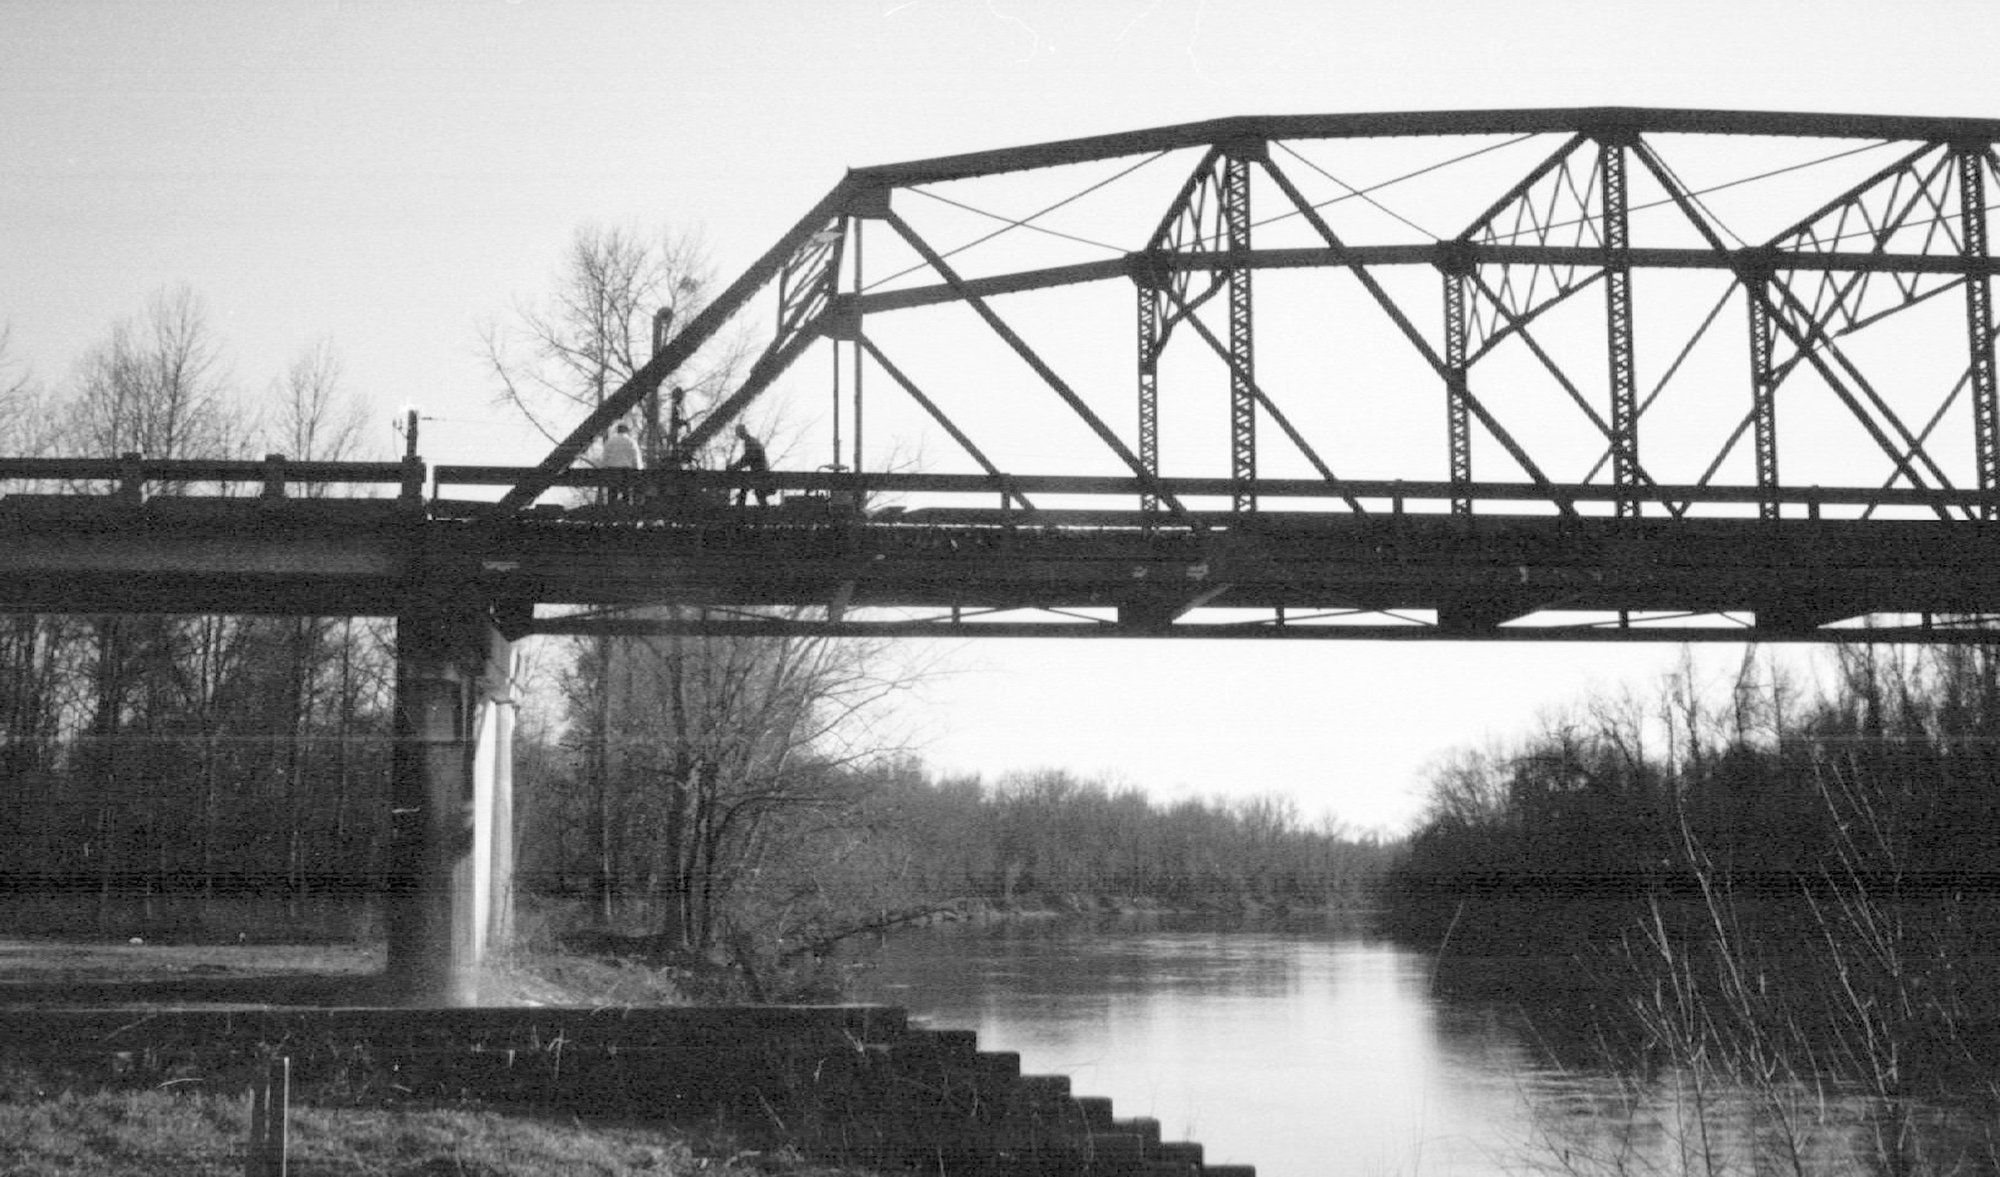 Demolition of the old Wateree River truss bridge on U.S. 76/378 began in early 1986.